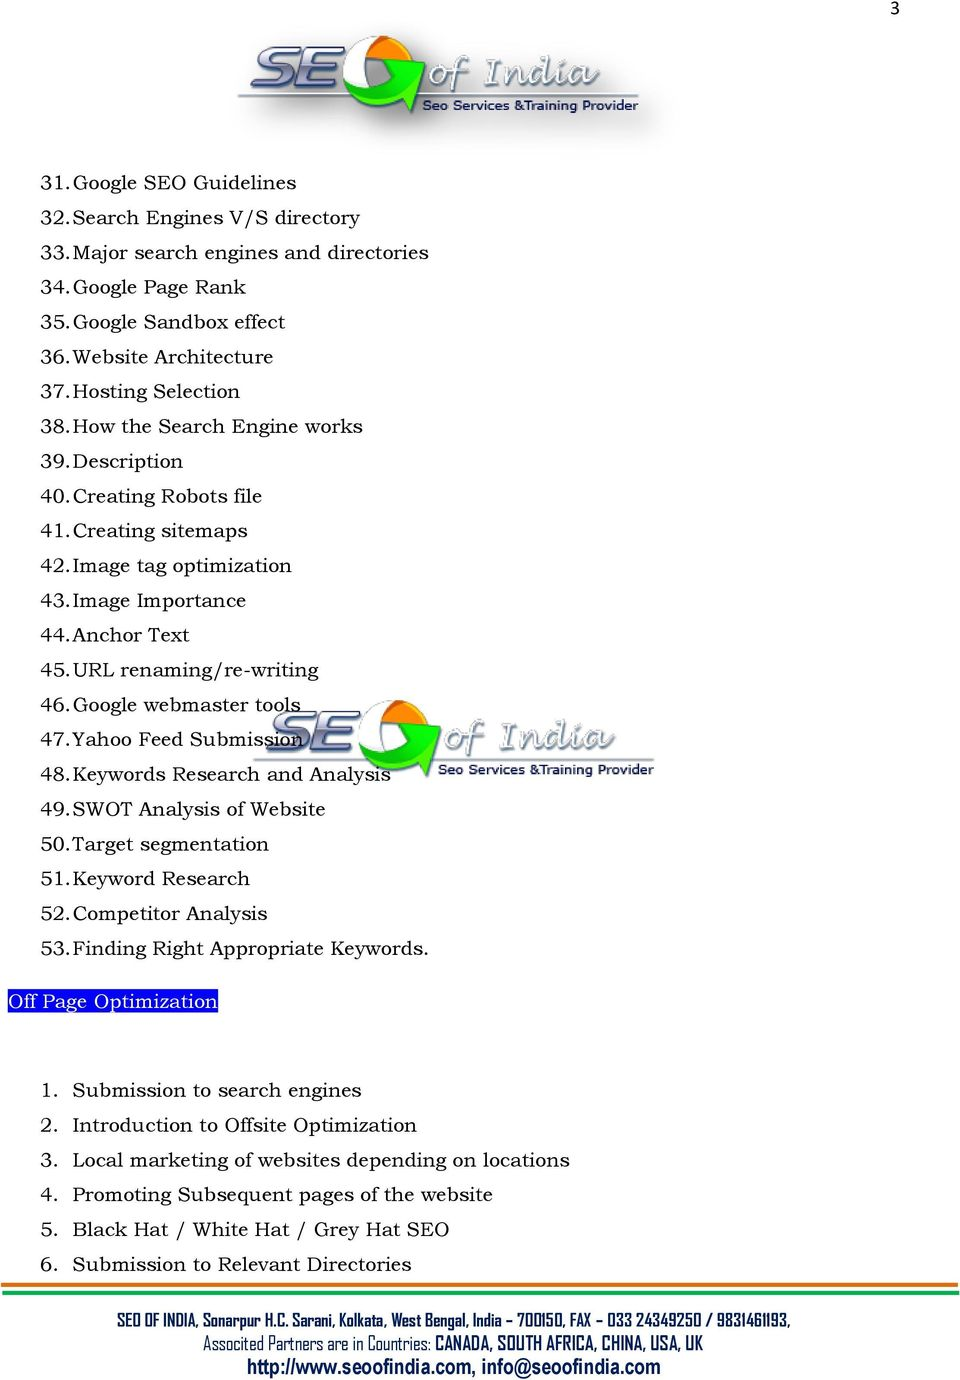 Google webmaster tools 47. Yahoo Feed Submission 48. Keywords Research and Analysis 49. SWOT Analysis of Website 50. Target segmentation 51. Keyword Research 52. Competitor Analysis 53.